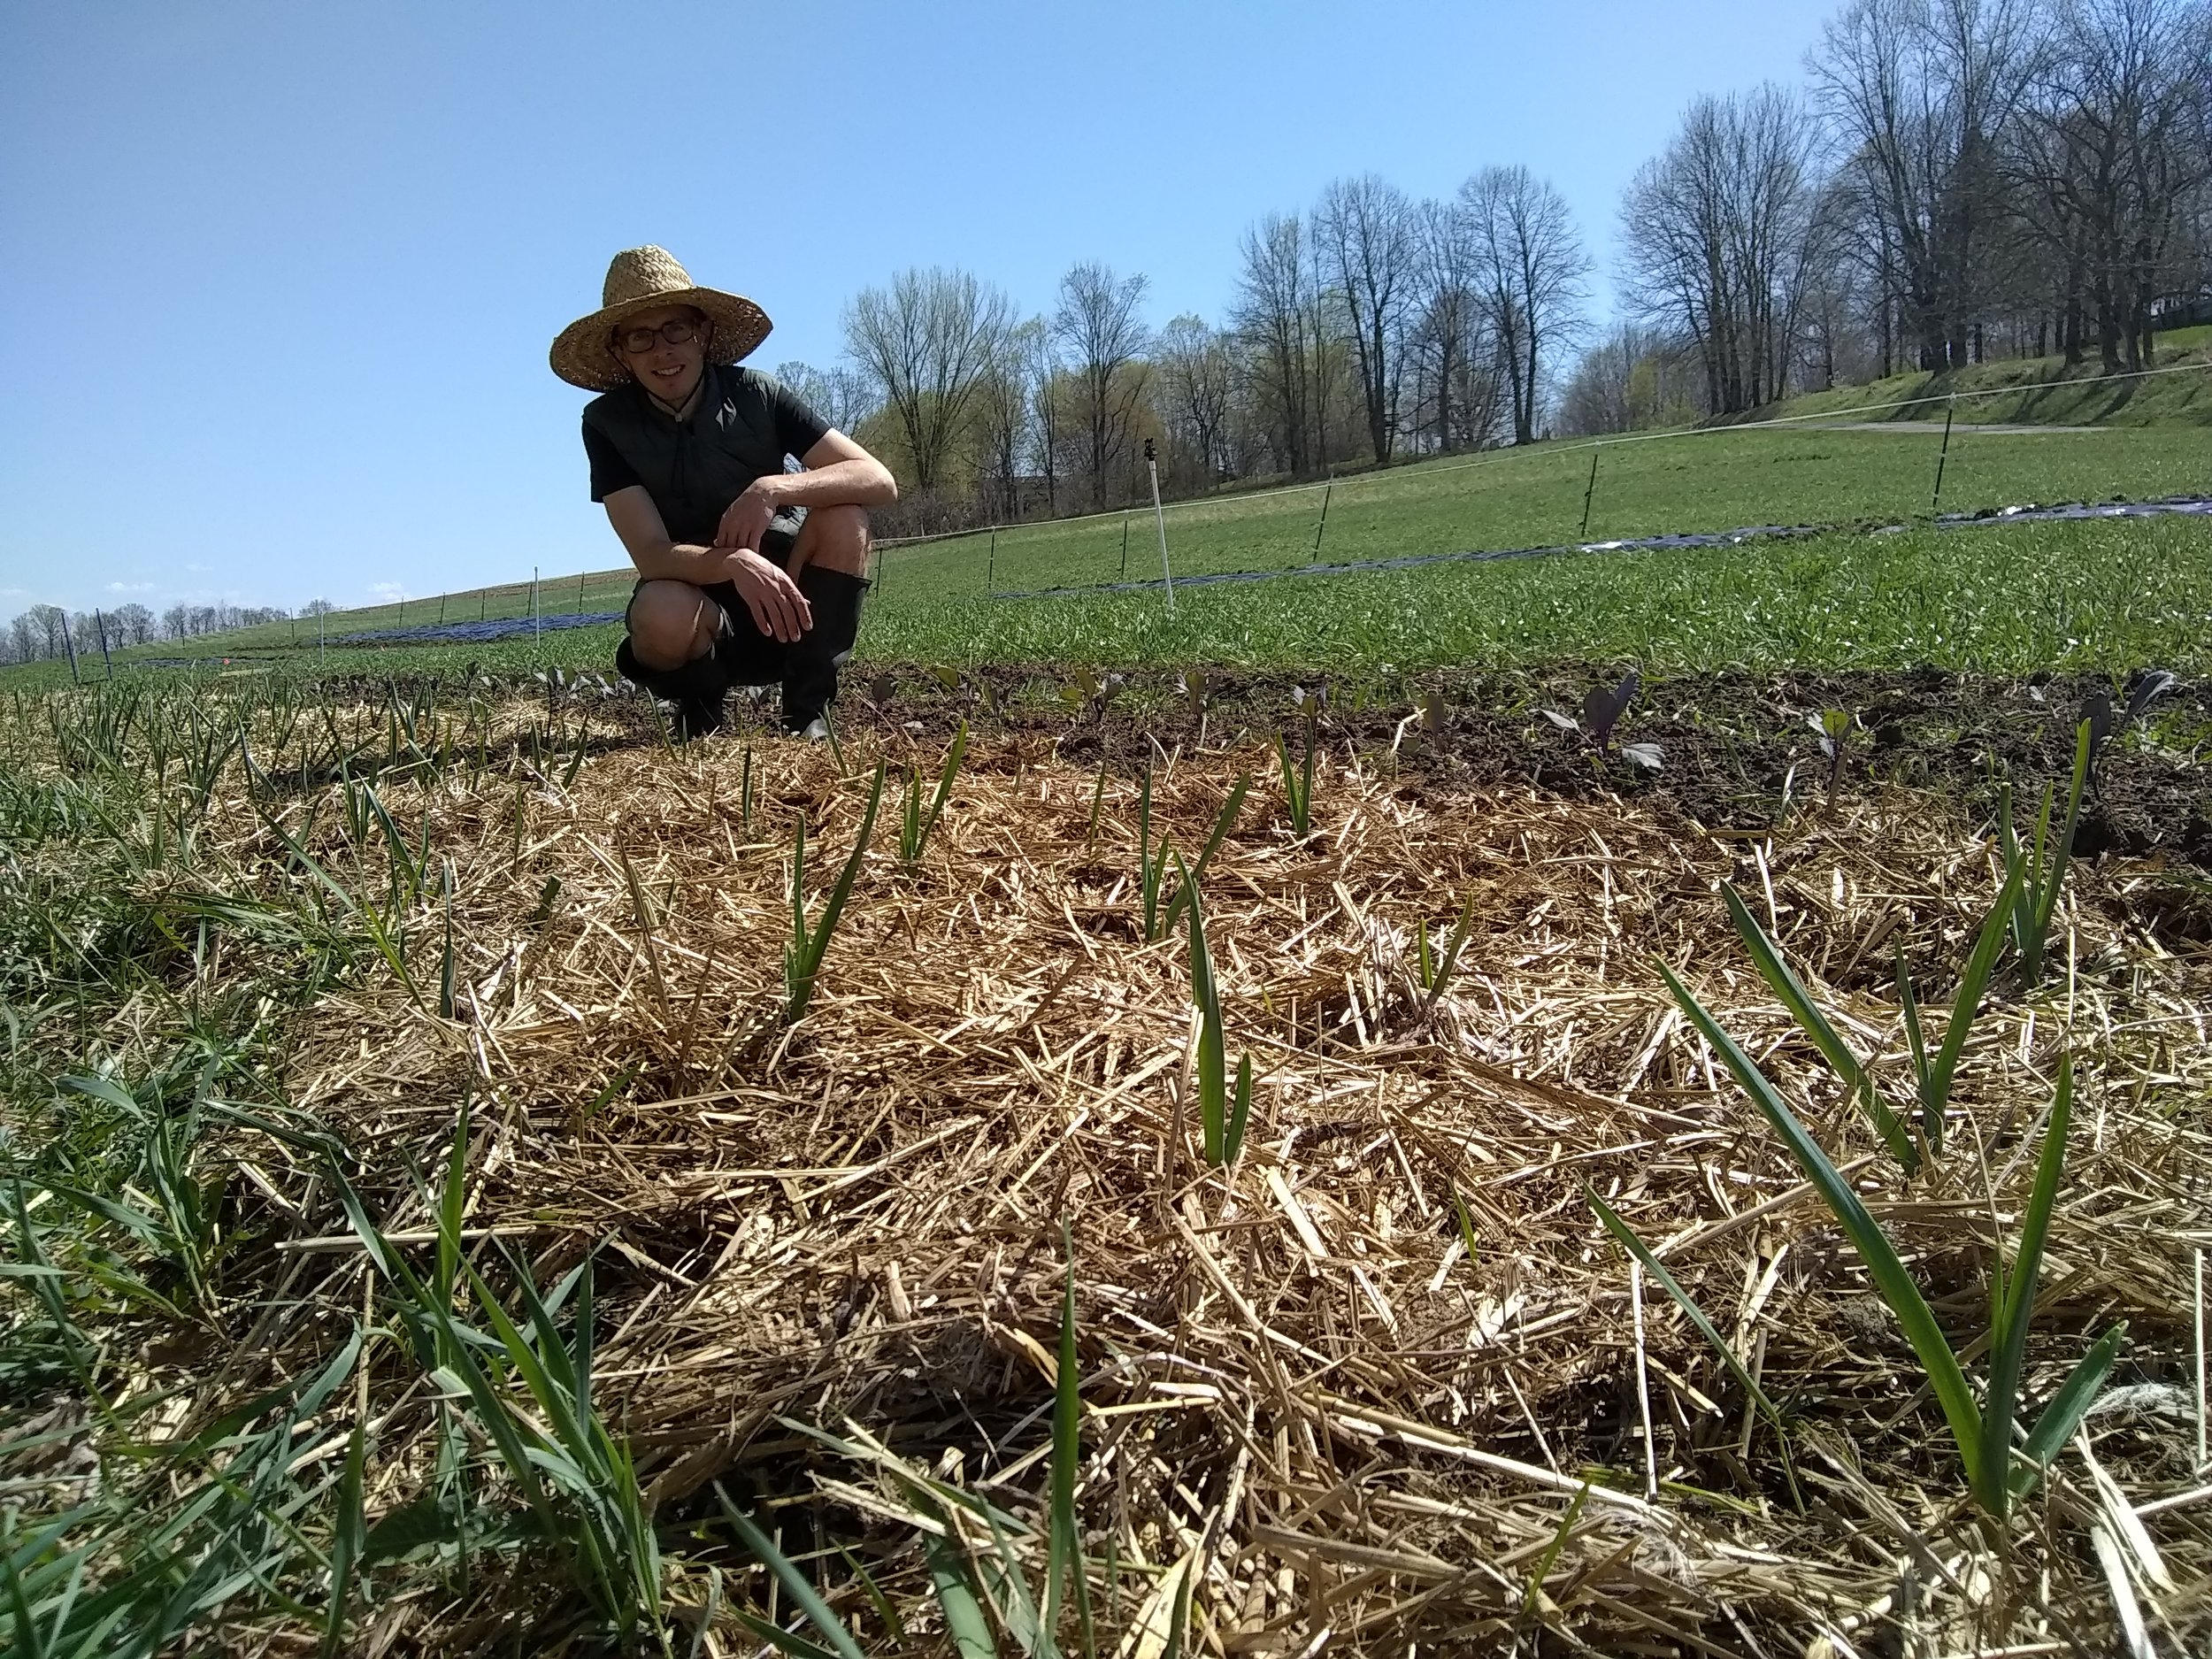 nicholas inspecting our garlic, which was planted on the day of the home inspection in October